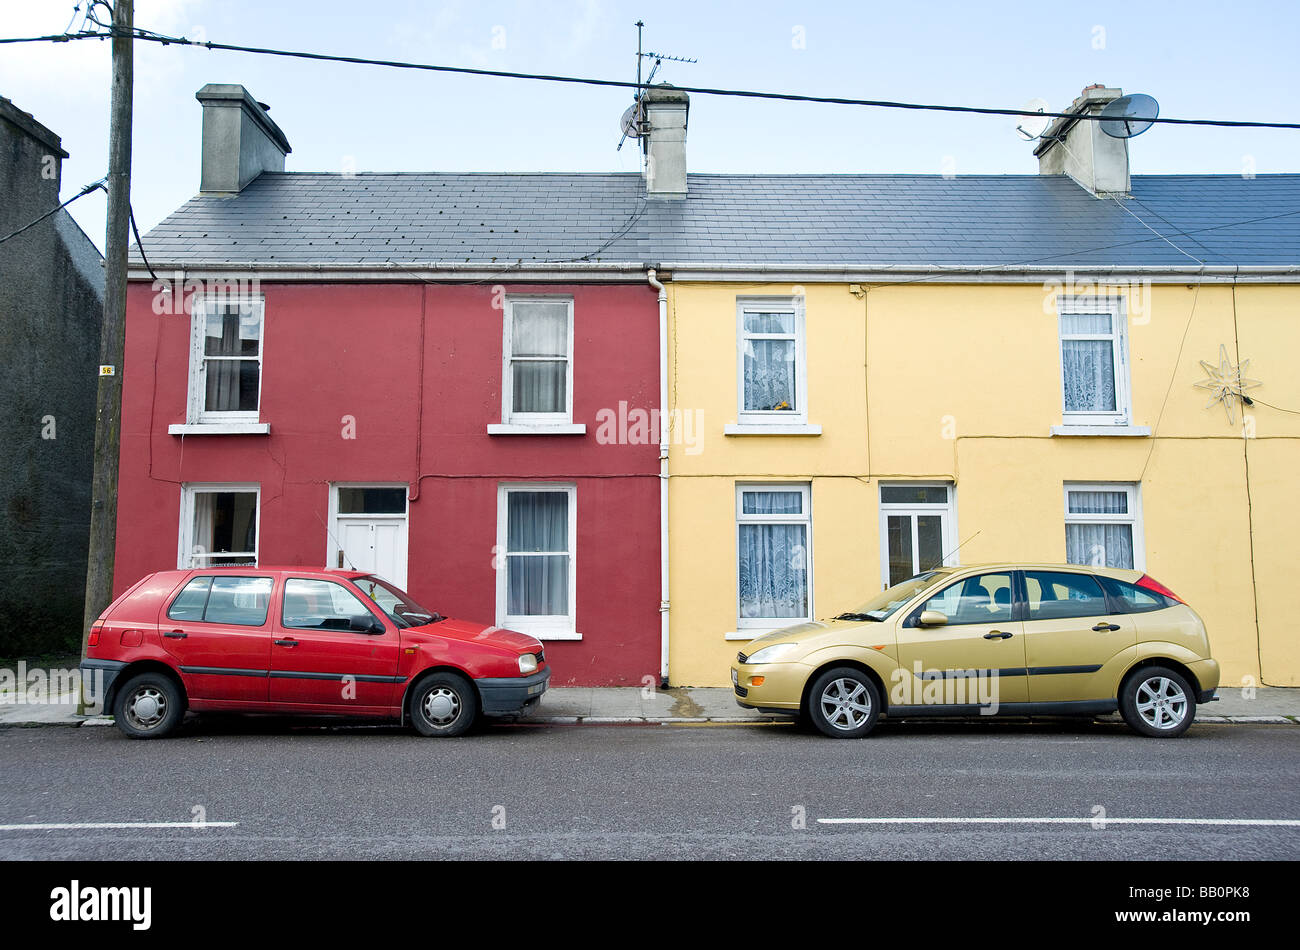 These neighbors may love their favorite color a little too much Ireland - Stock Image